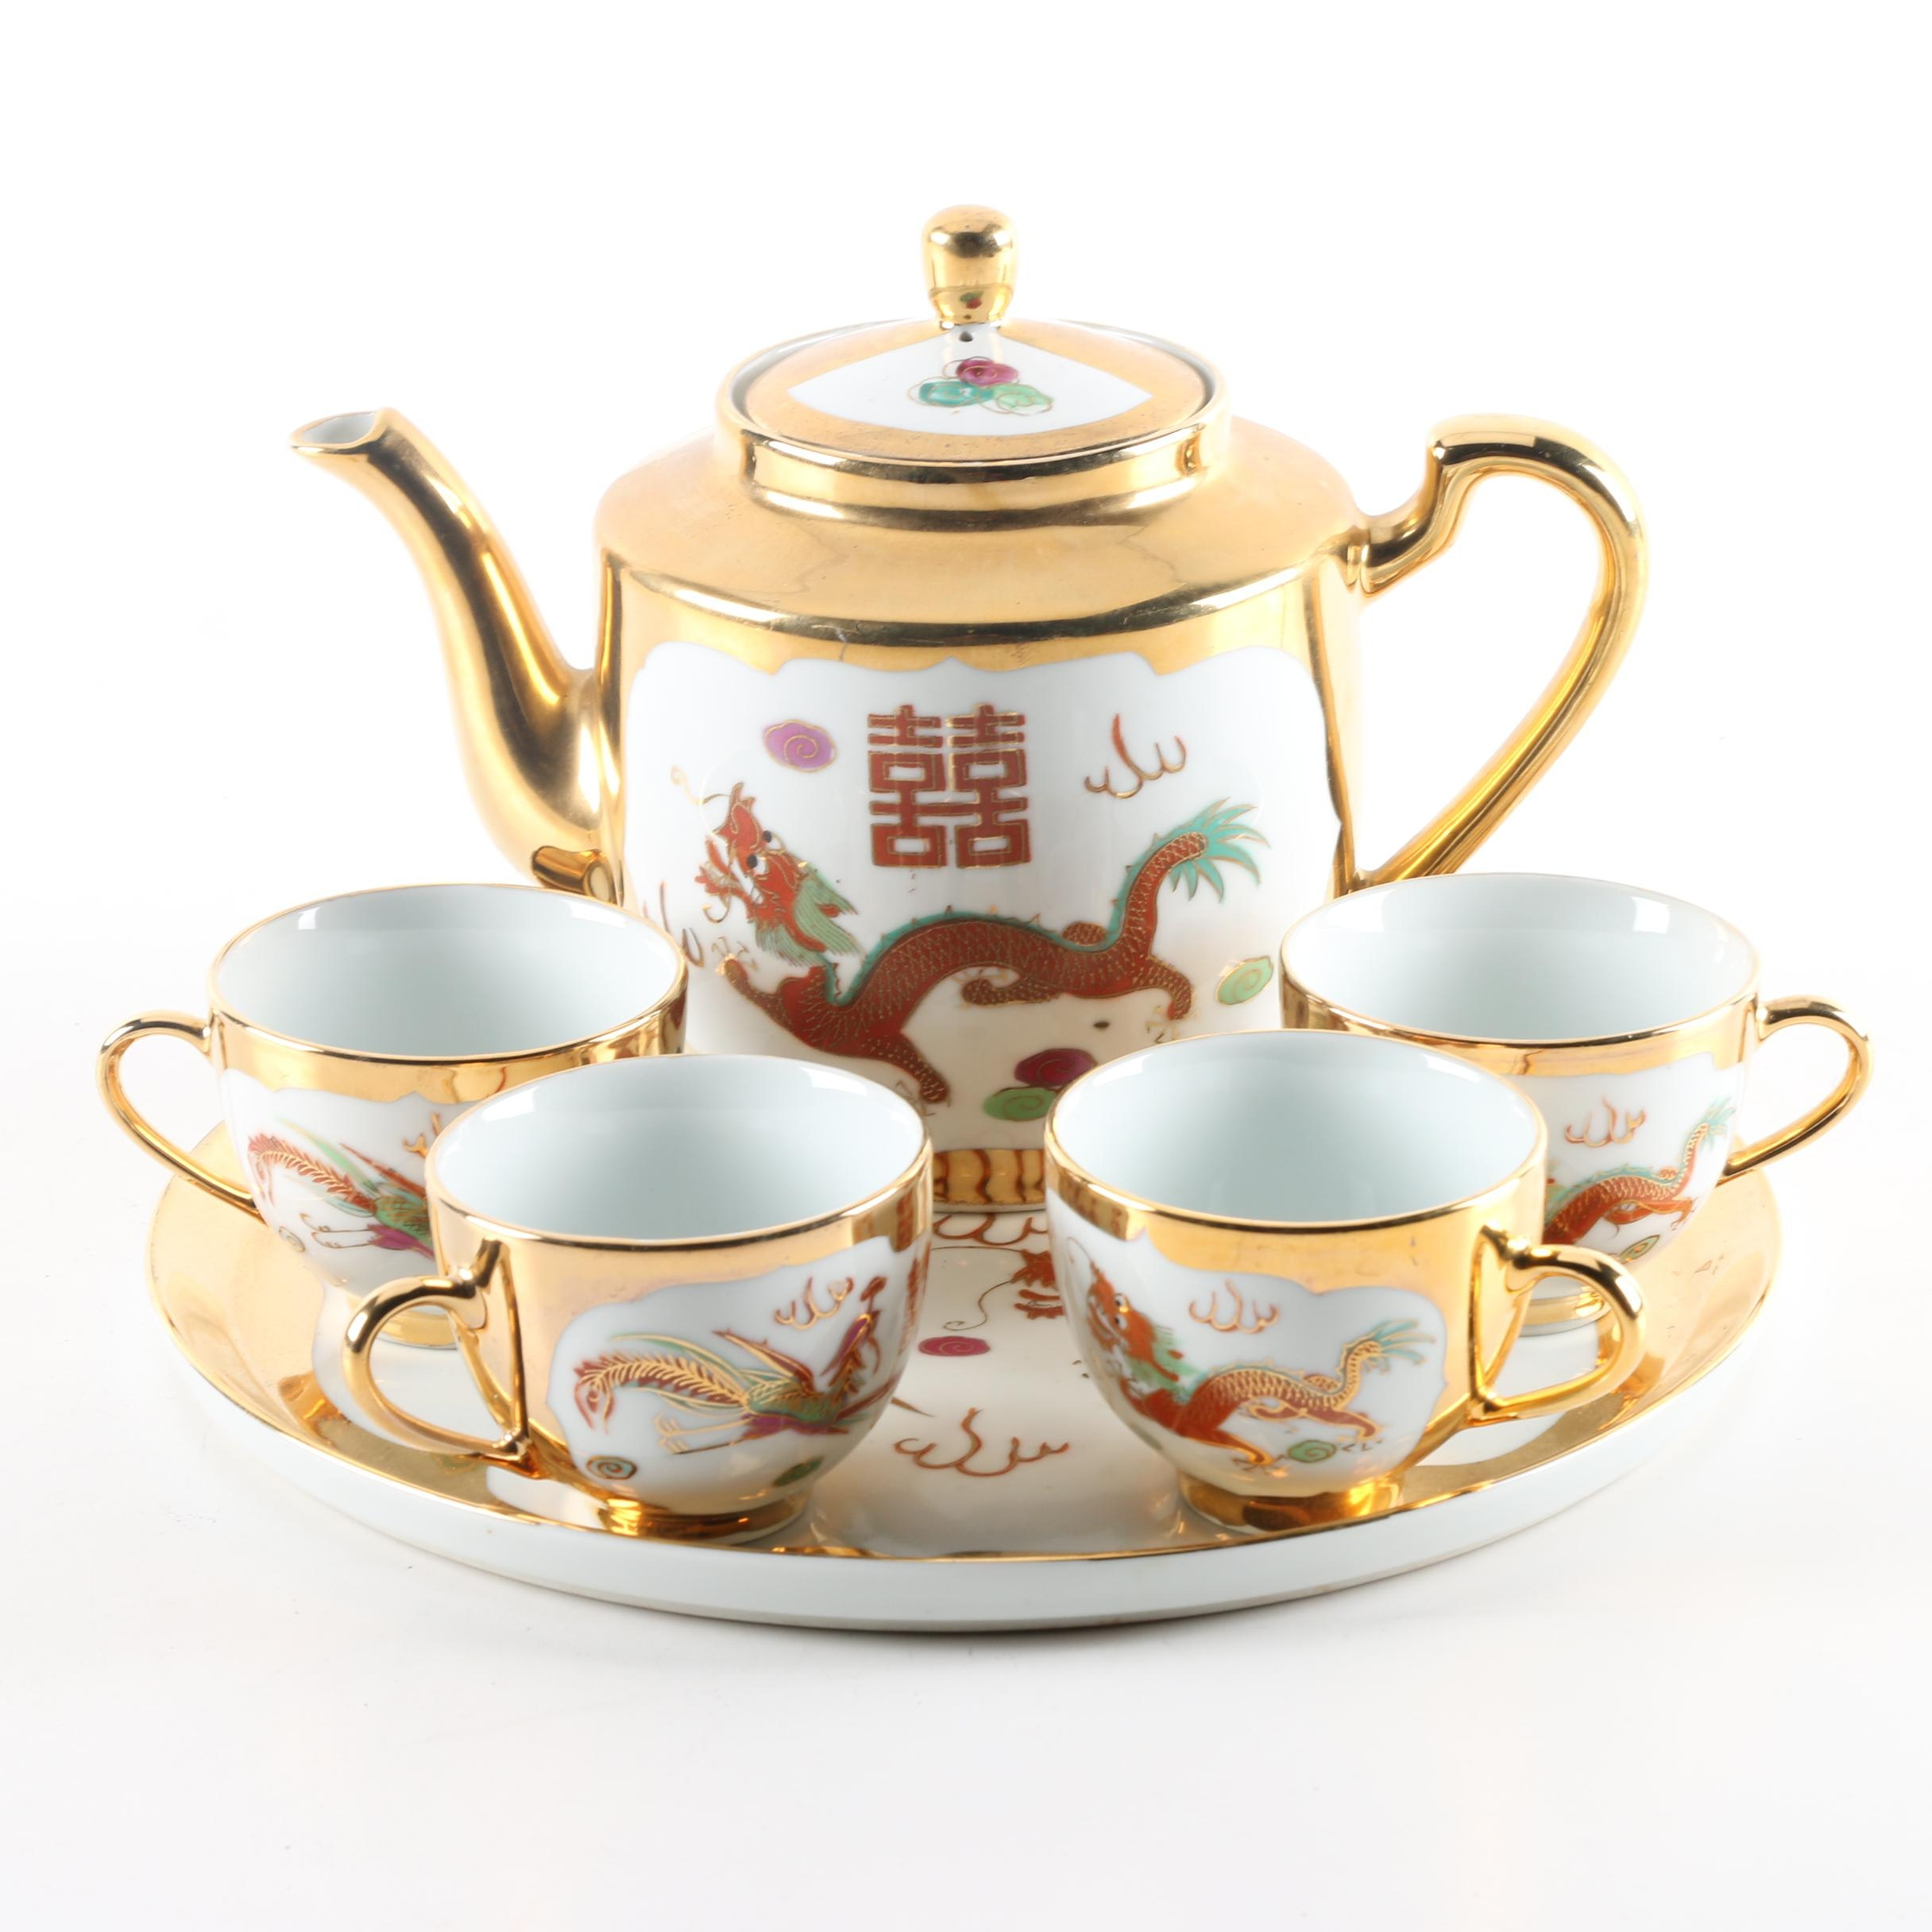 Chinese Porcelain Tea Service with Dragons